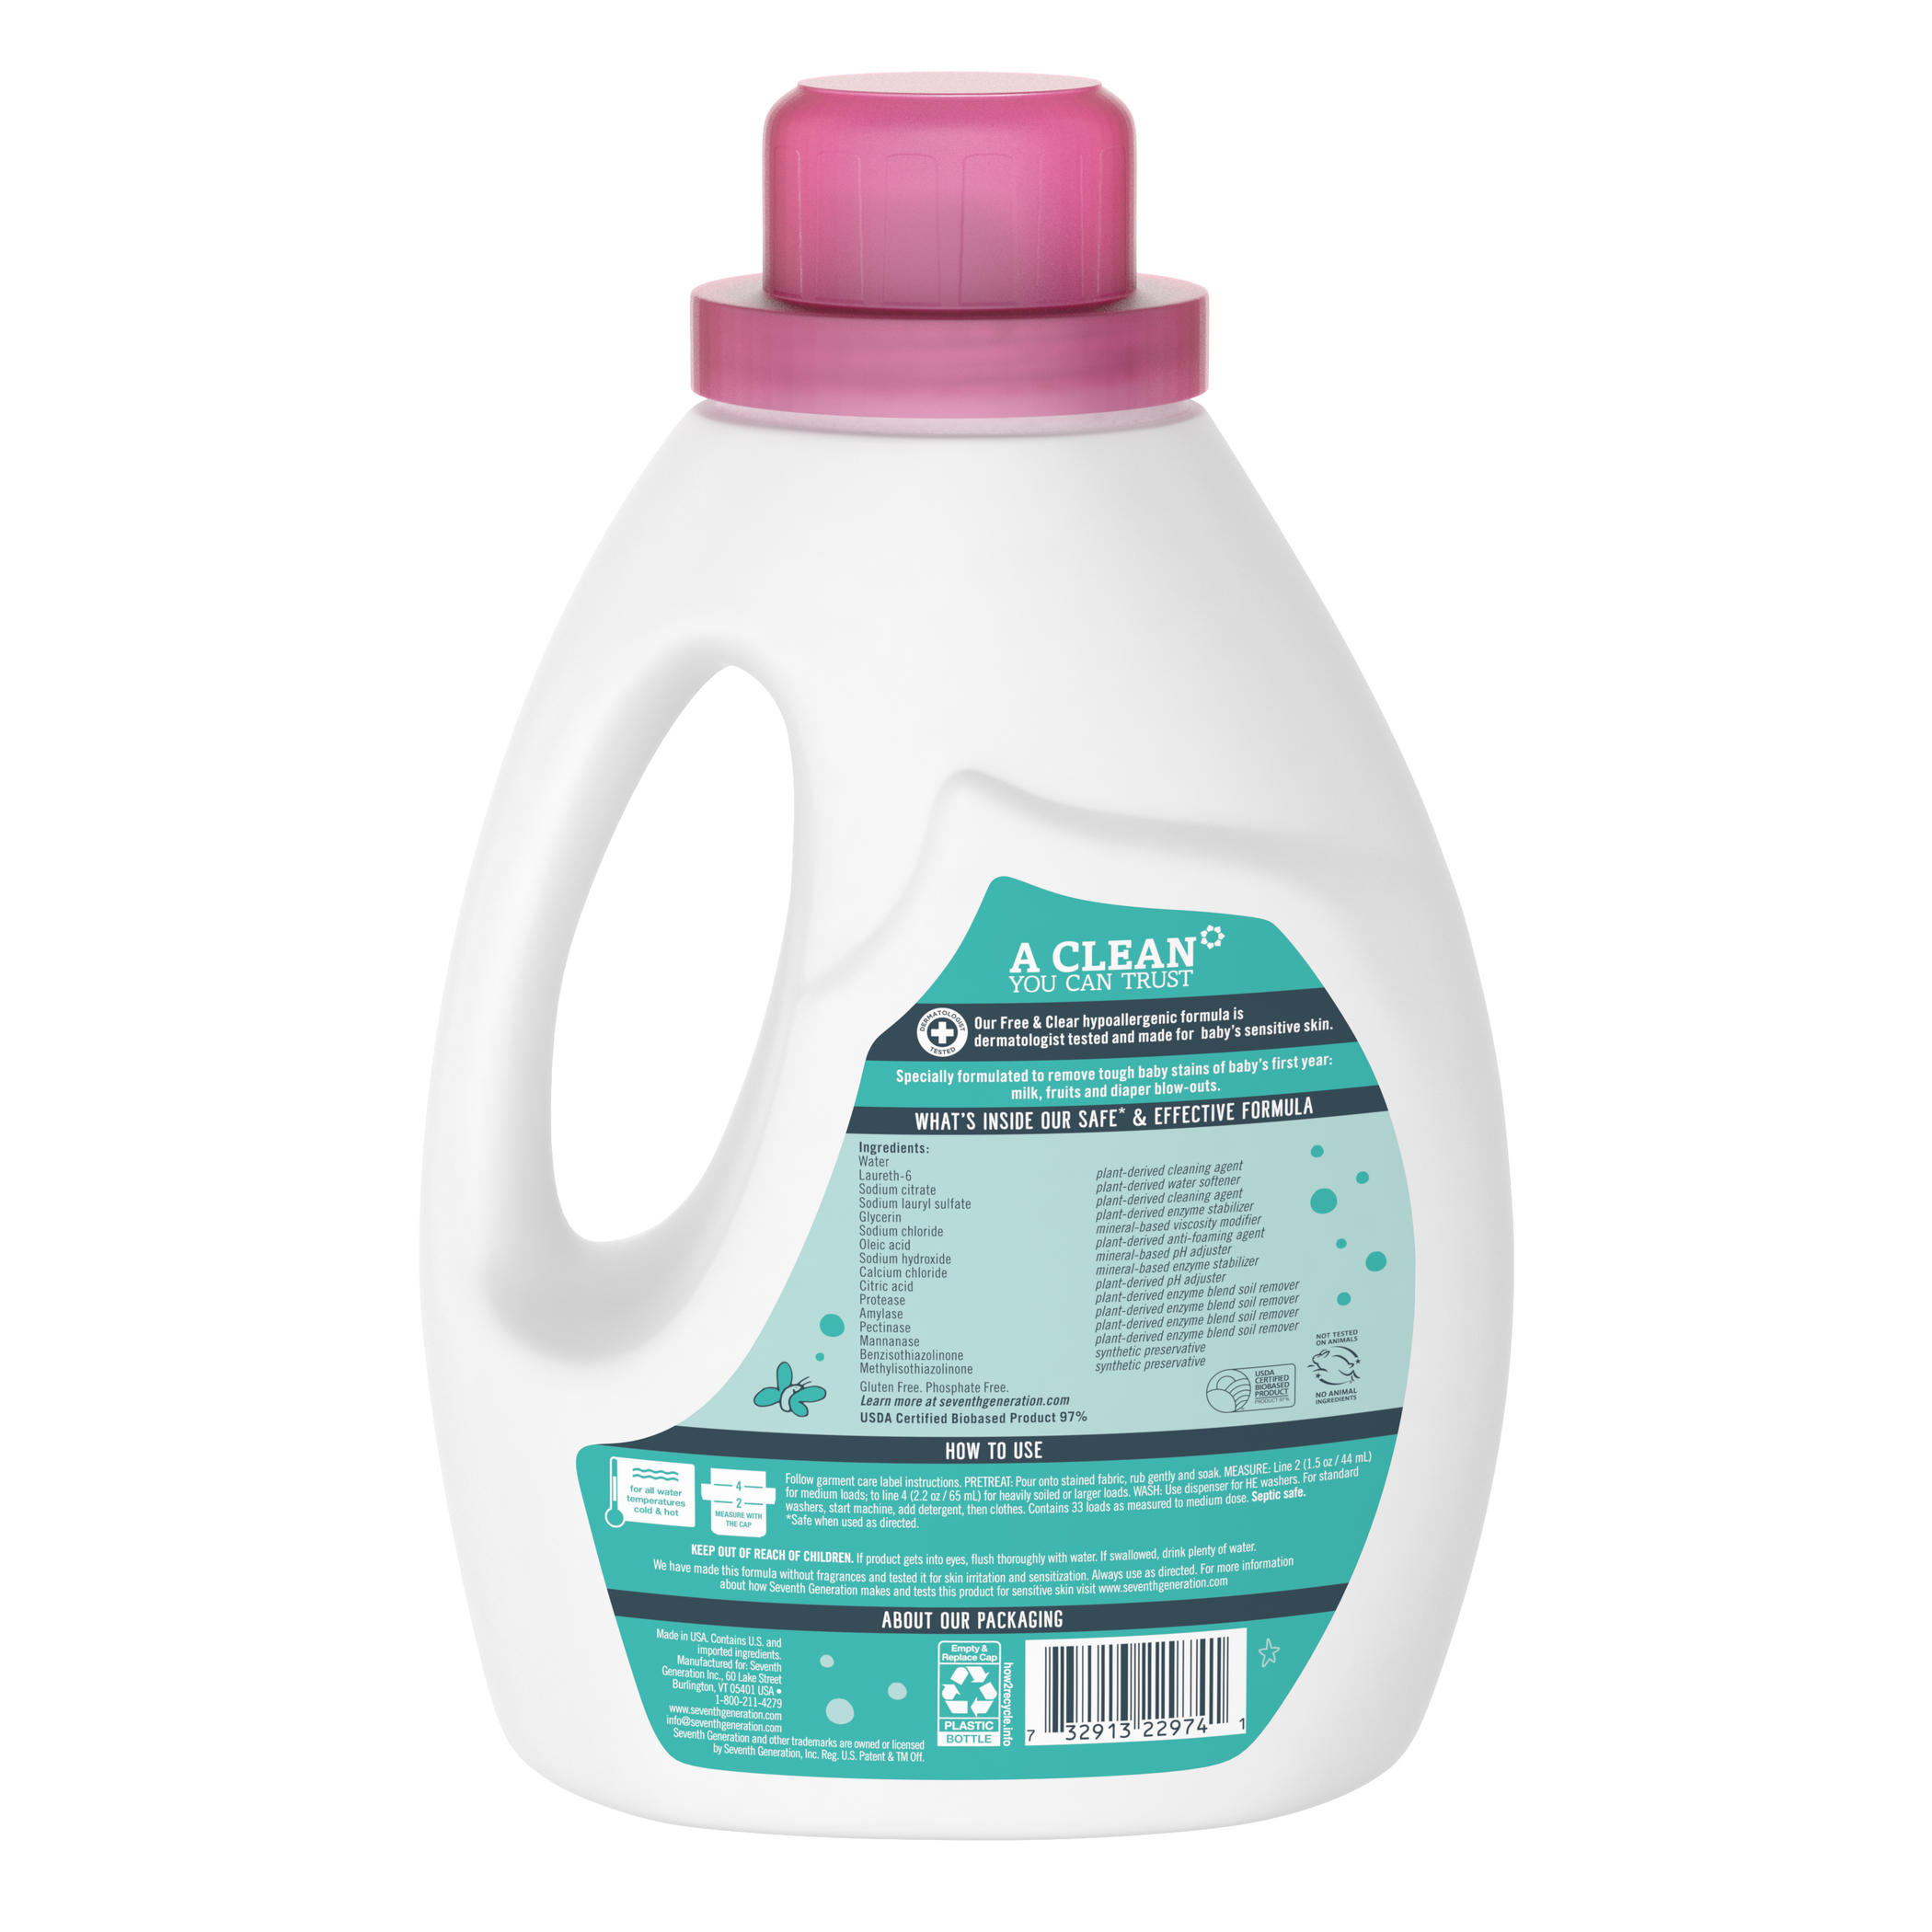 Baby Laundry Detergent For Sensitive Skin Free Amp Clear